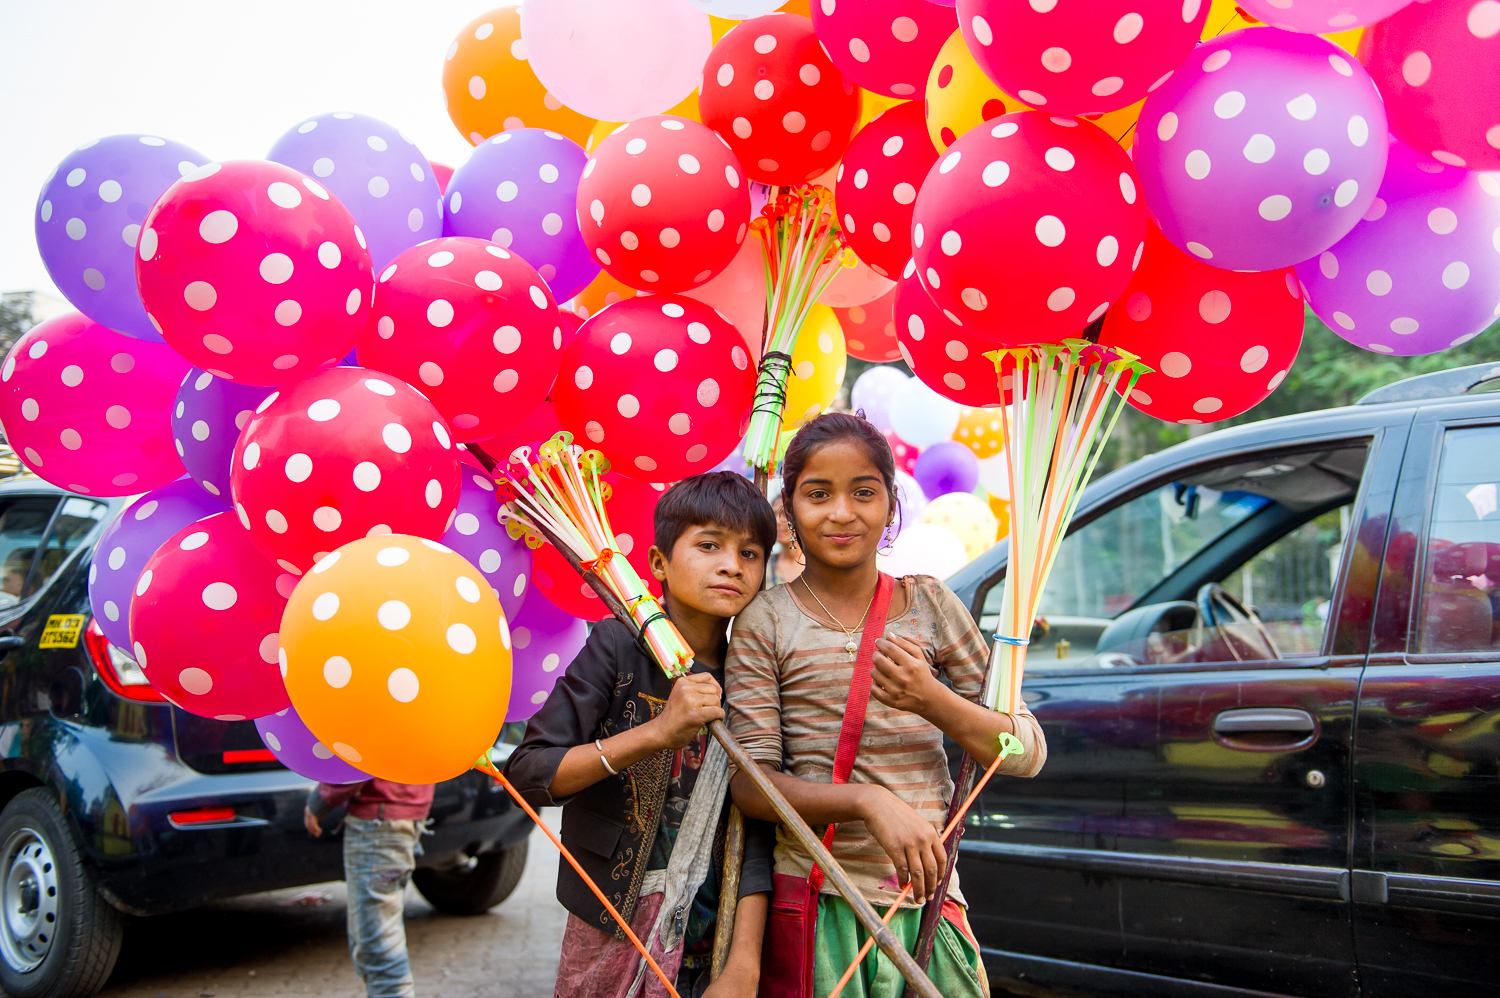 Children selling balloons near Mahalaxlmi, Mumbai, 2017